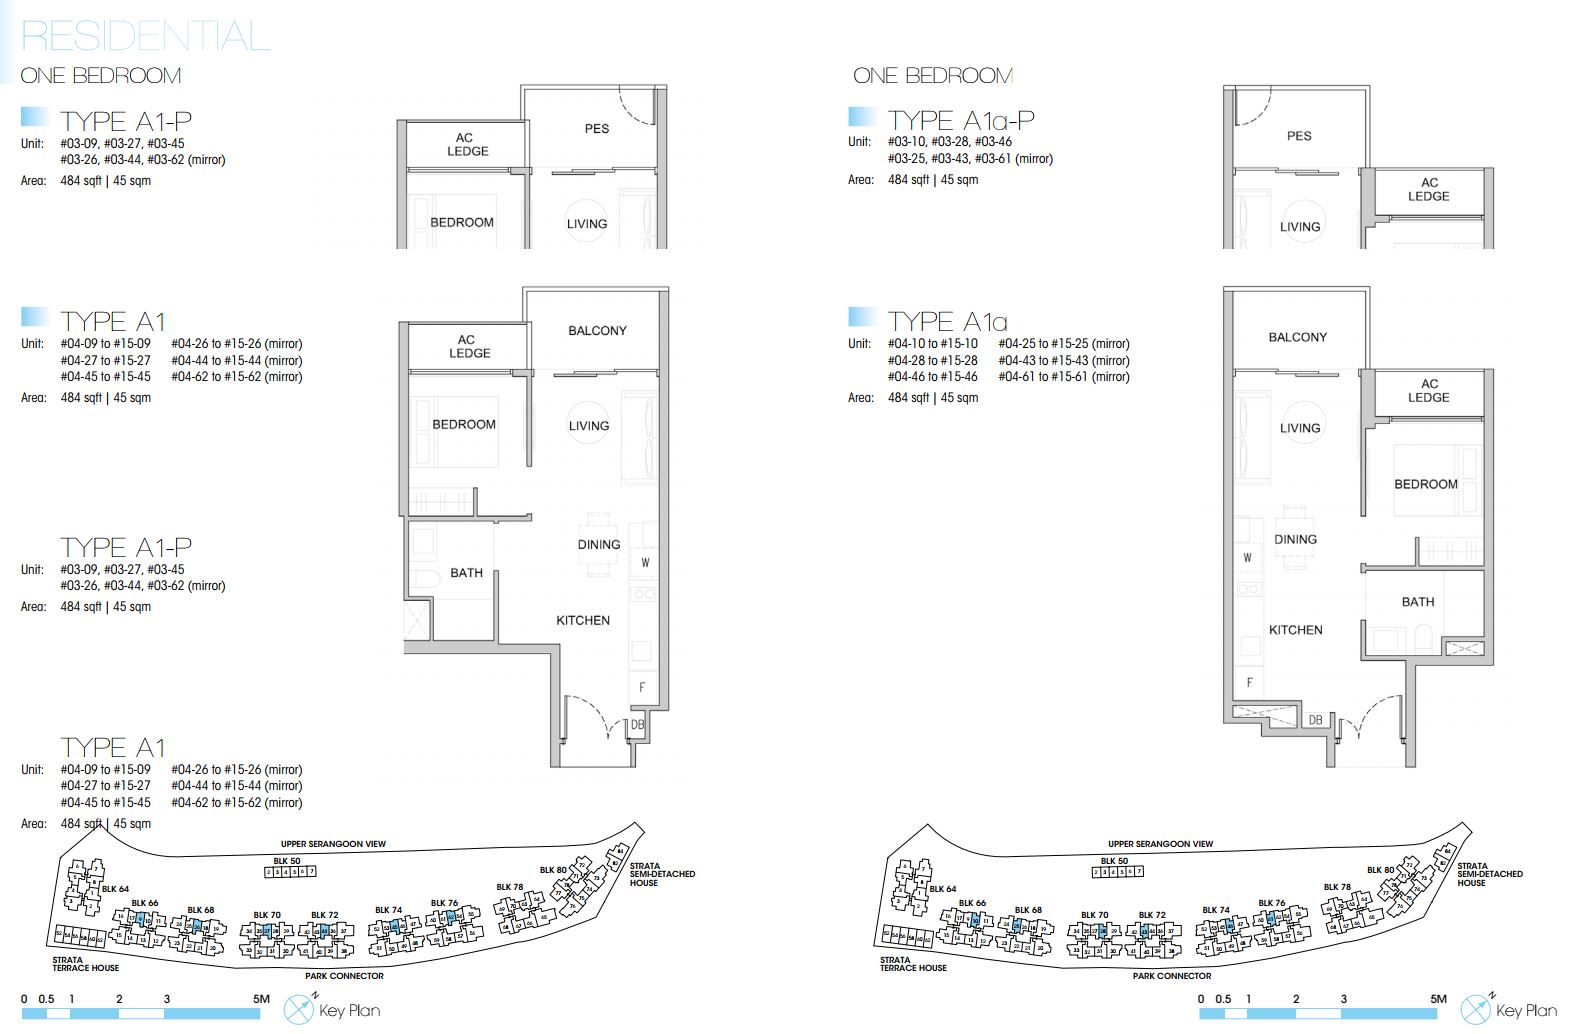 Kingsford Waterbay FloorPlan - 1 Bedroom Type A1